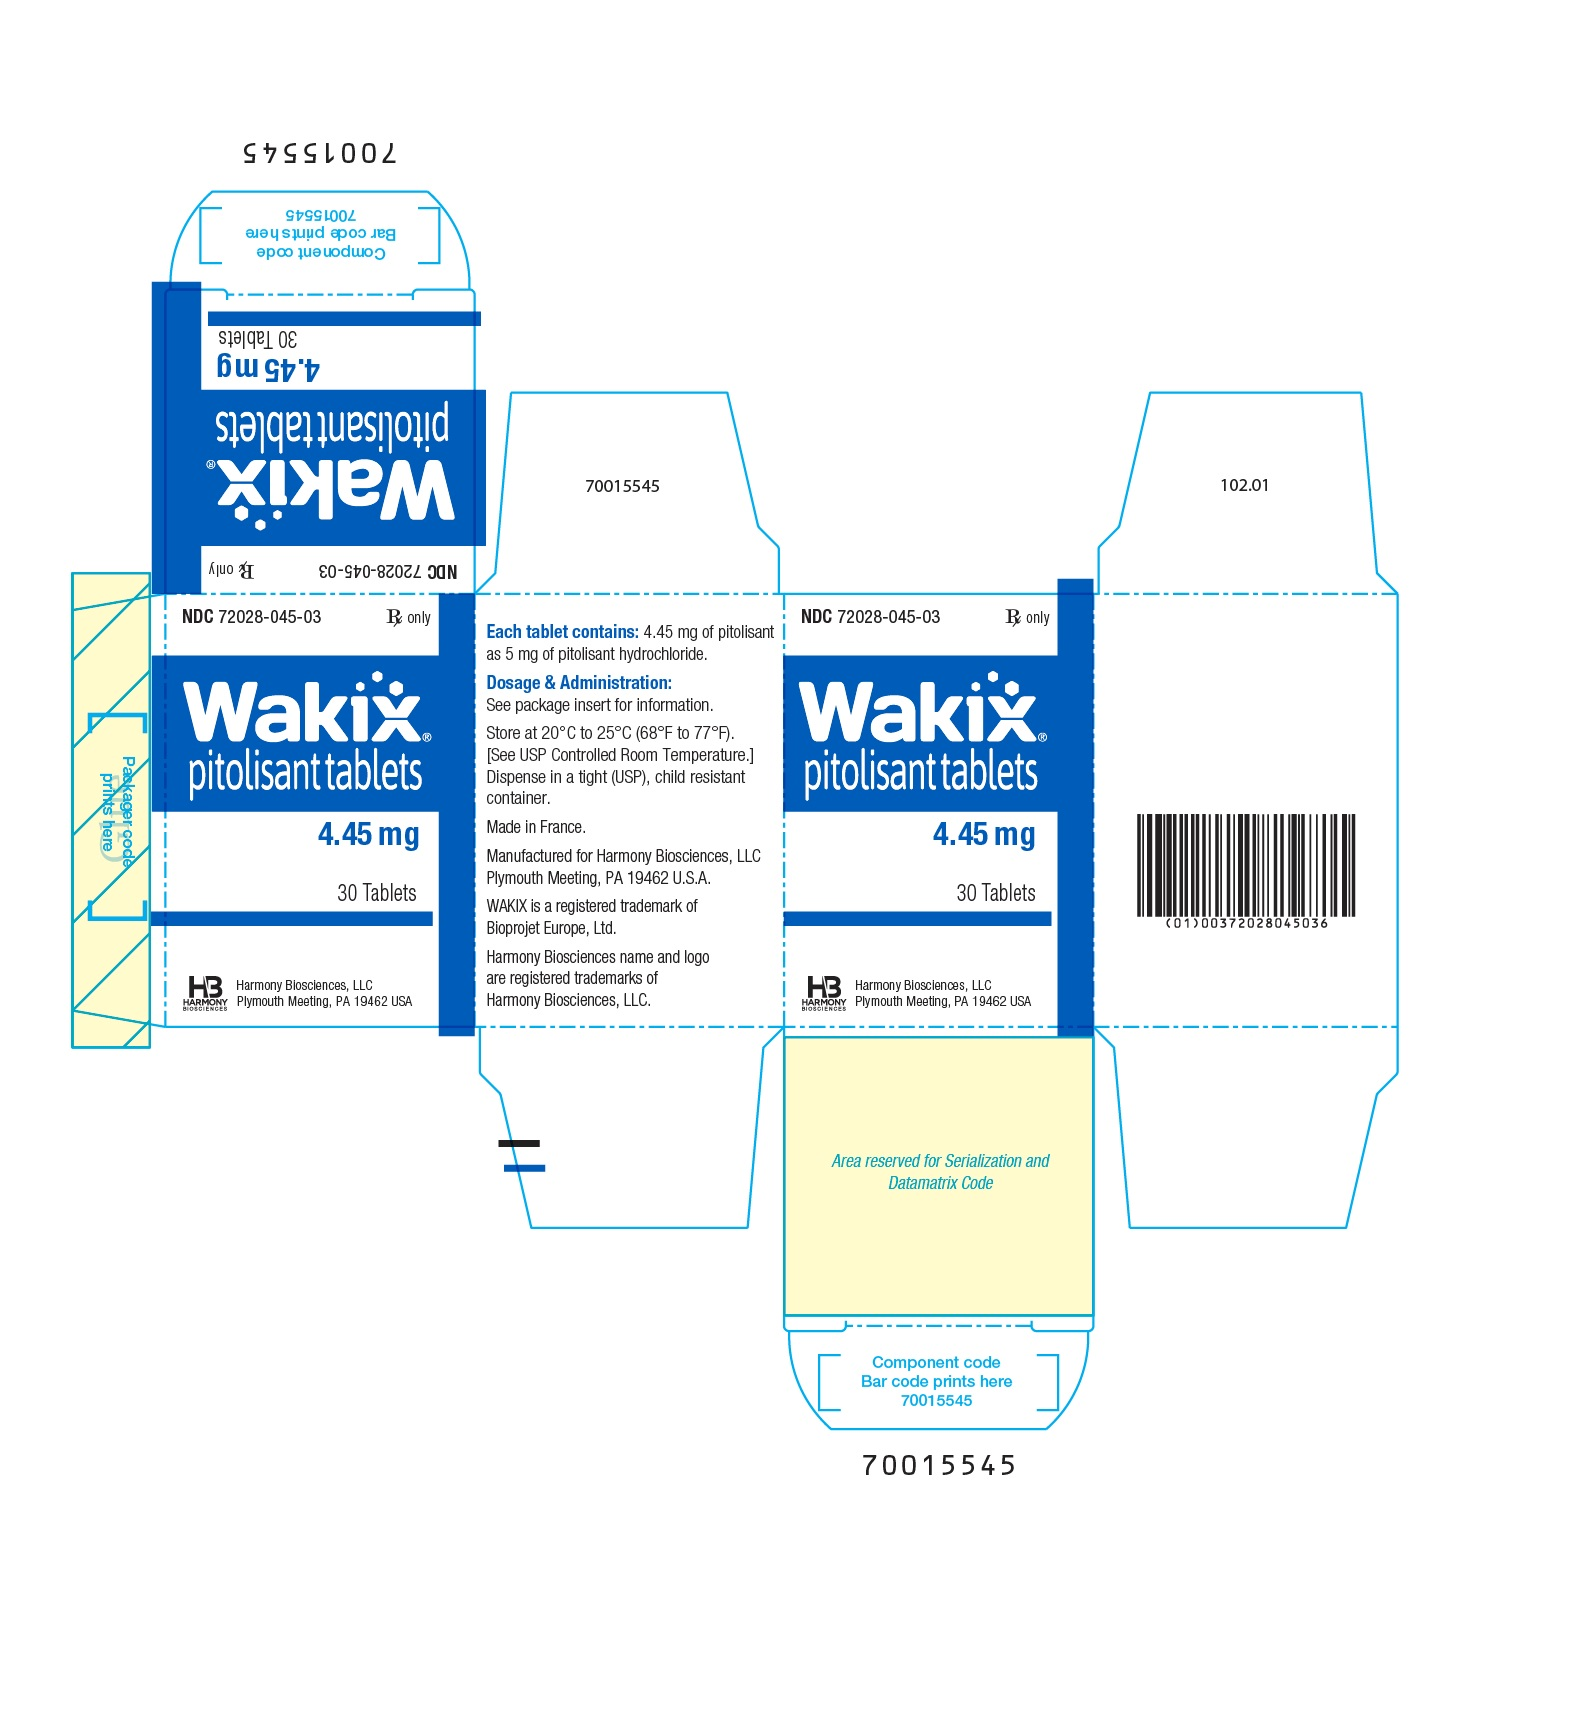 4.45 mg Carton Label